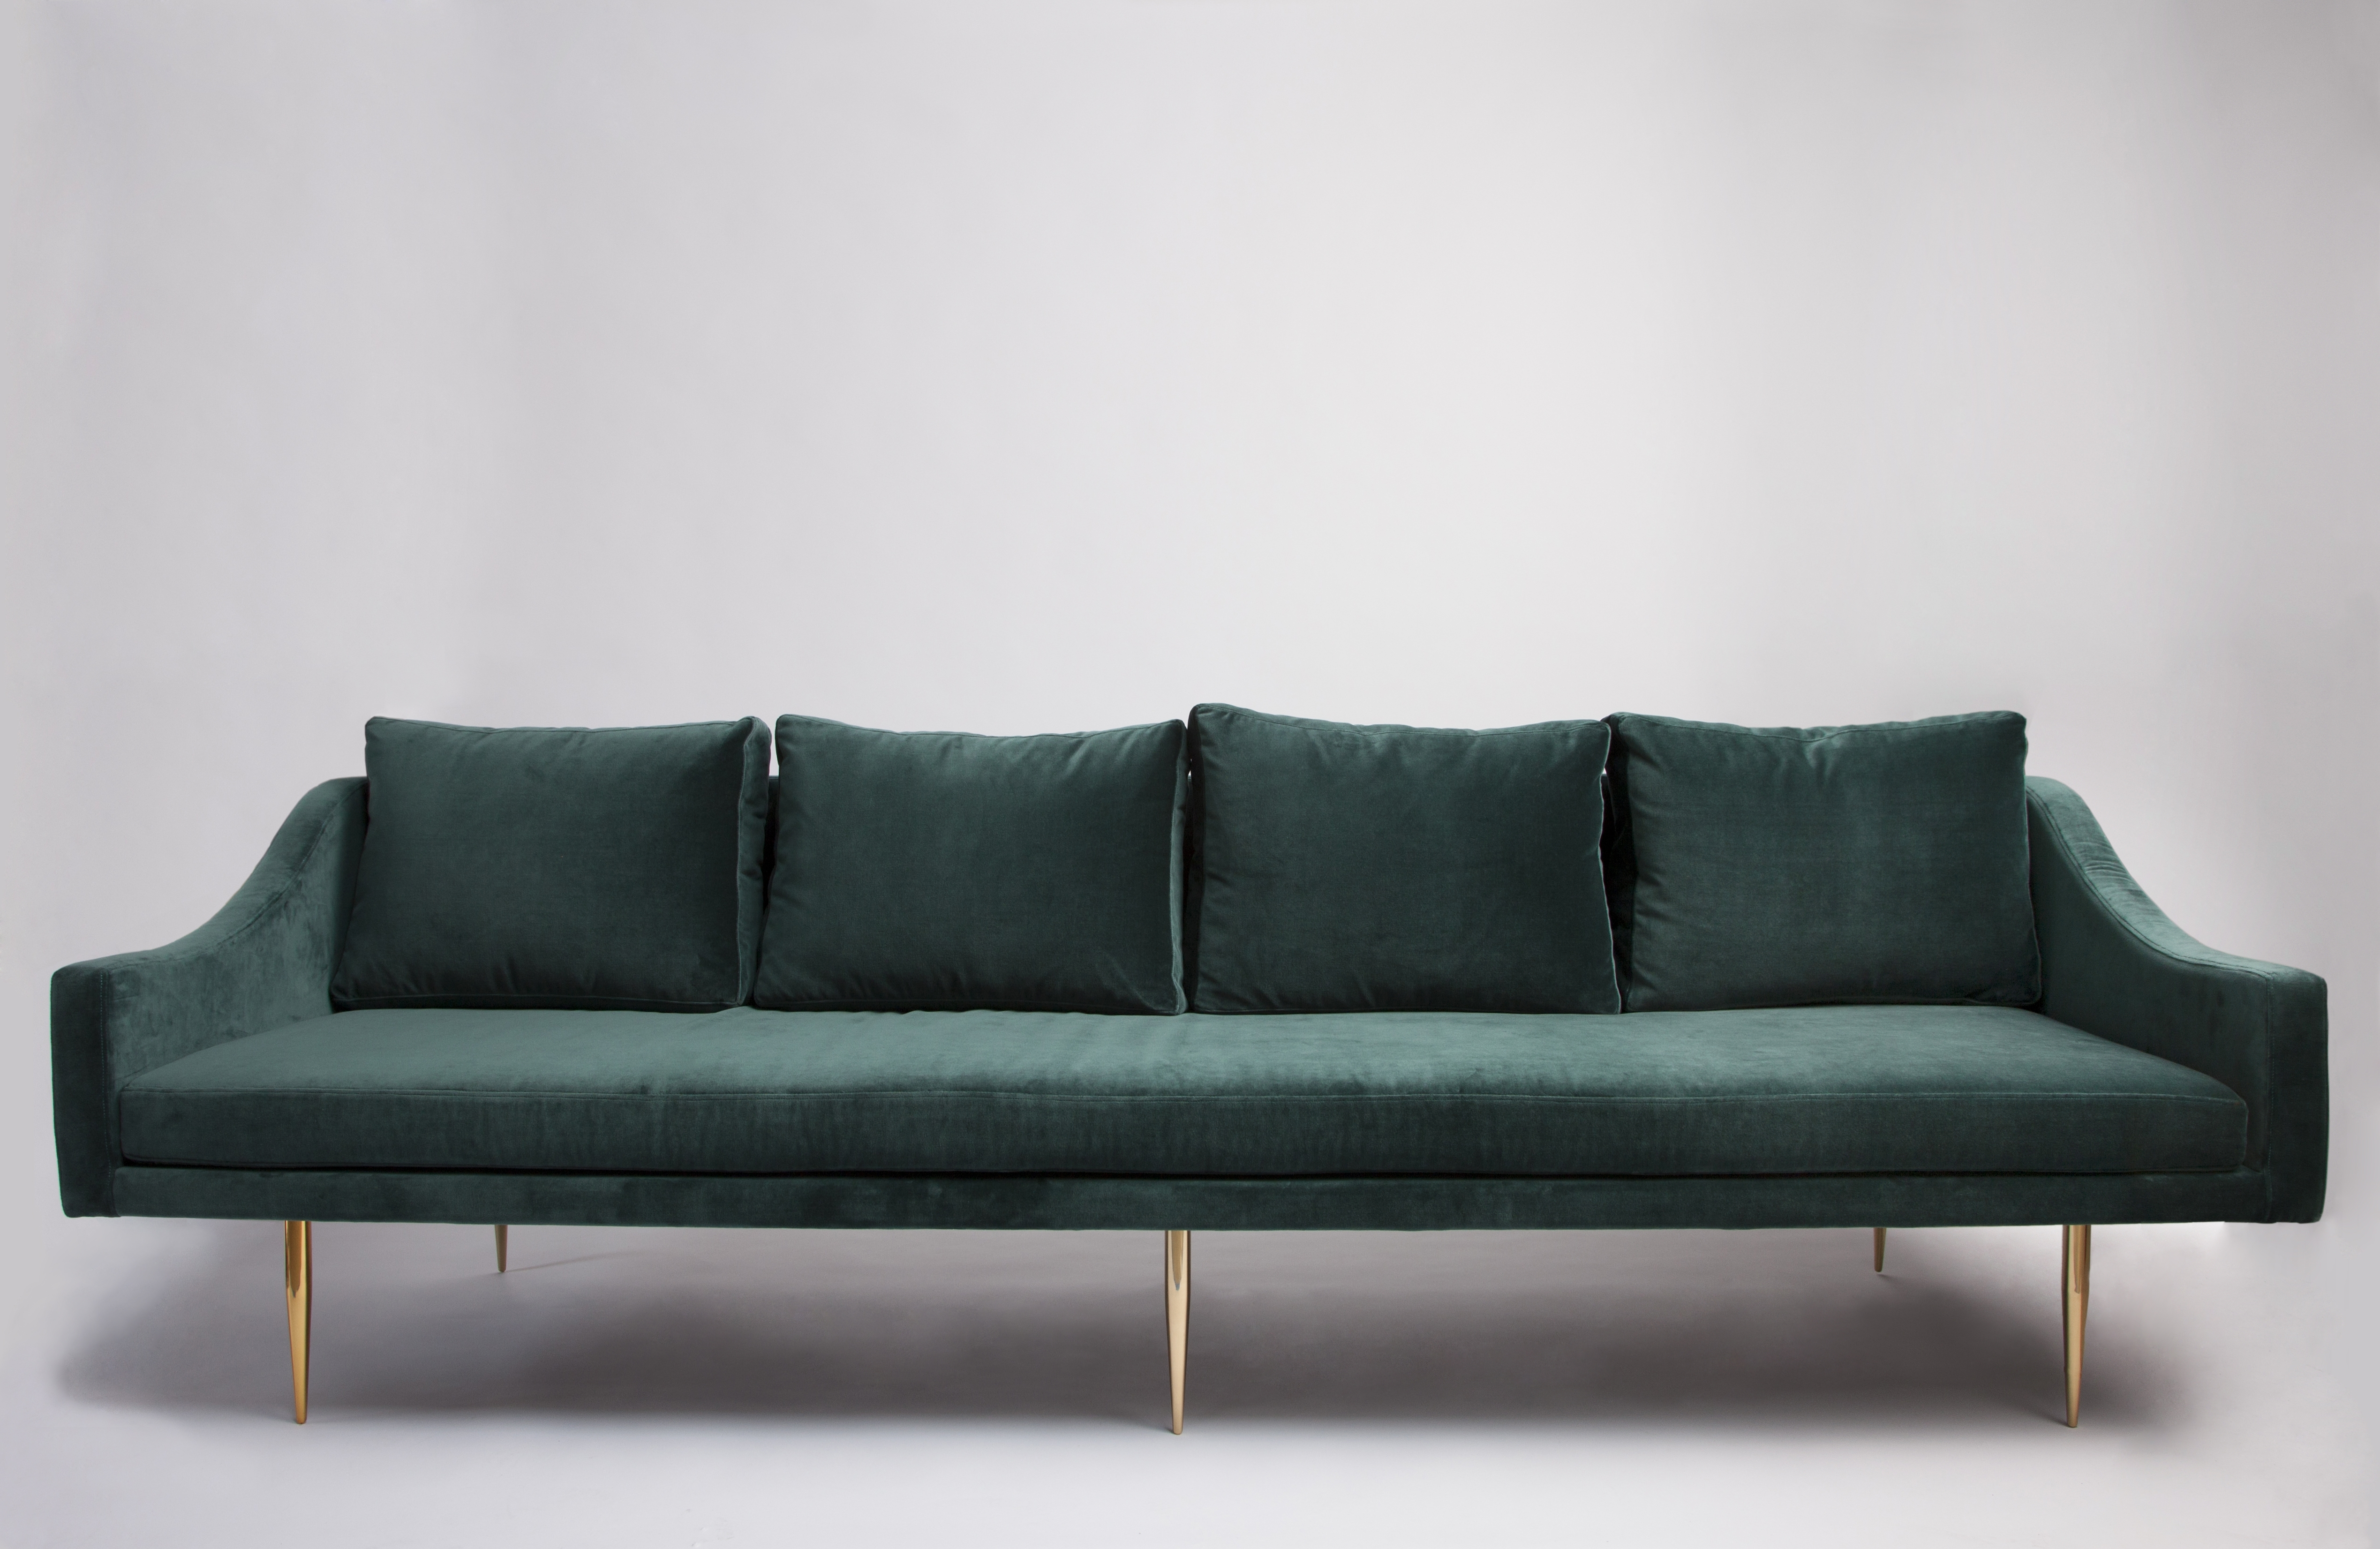 Green Sofa. Florence 3 Seat Teal Velvet Sofa With Gold Legs $2395 Throughout Most Popular Florence Sofas (Gallery 9 of 20)